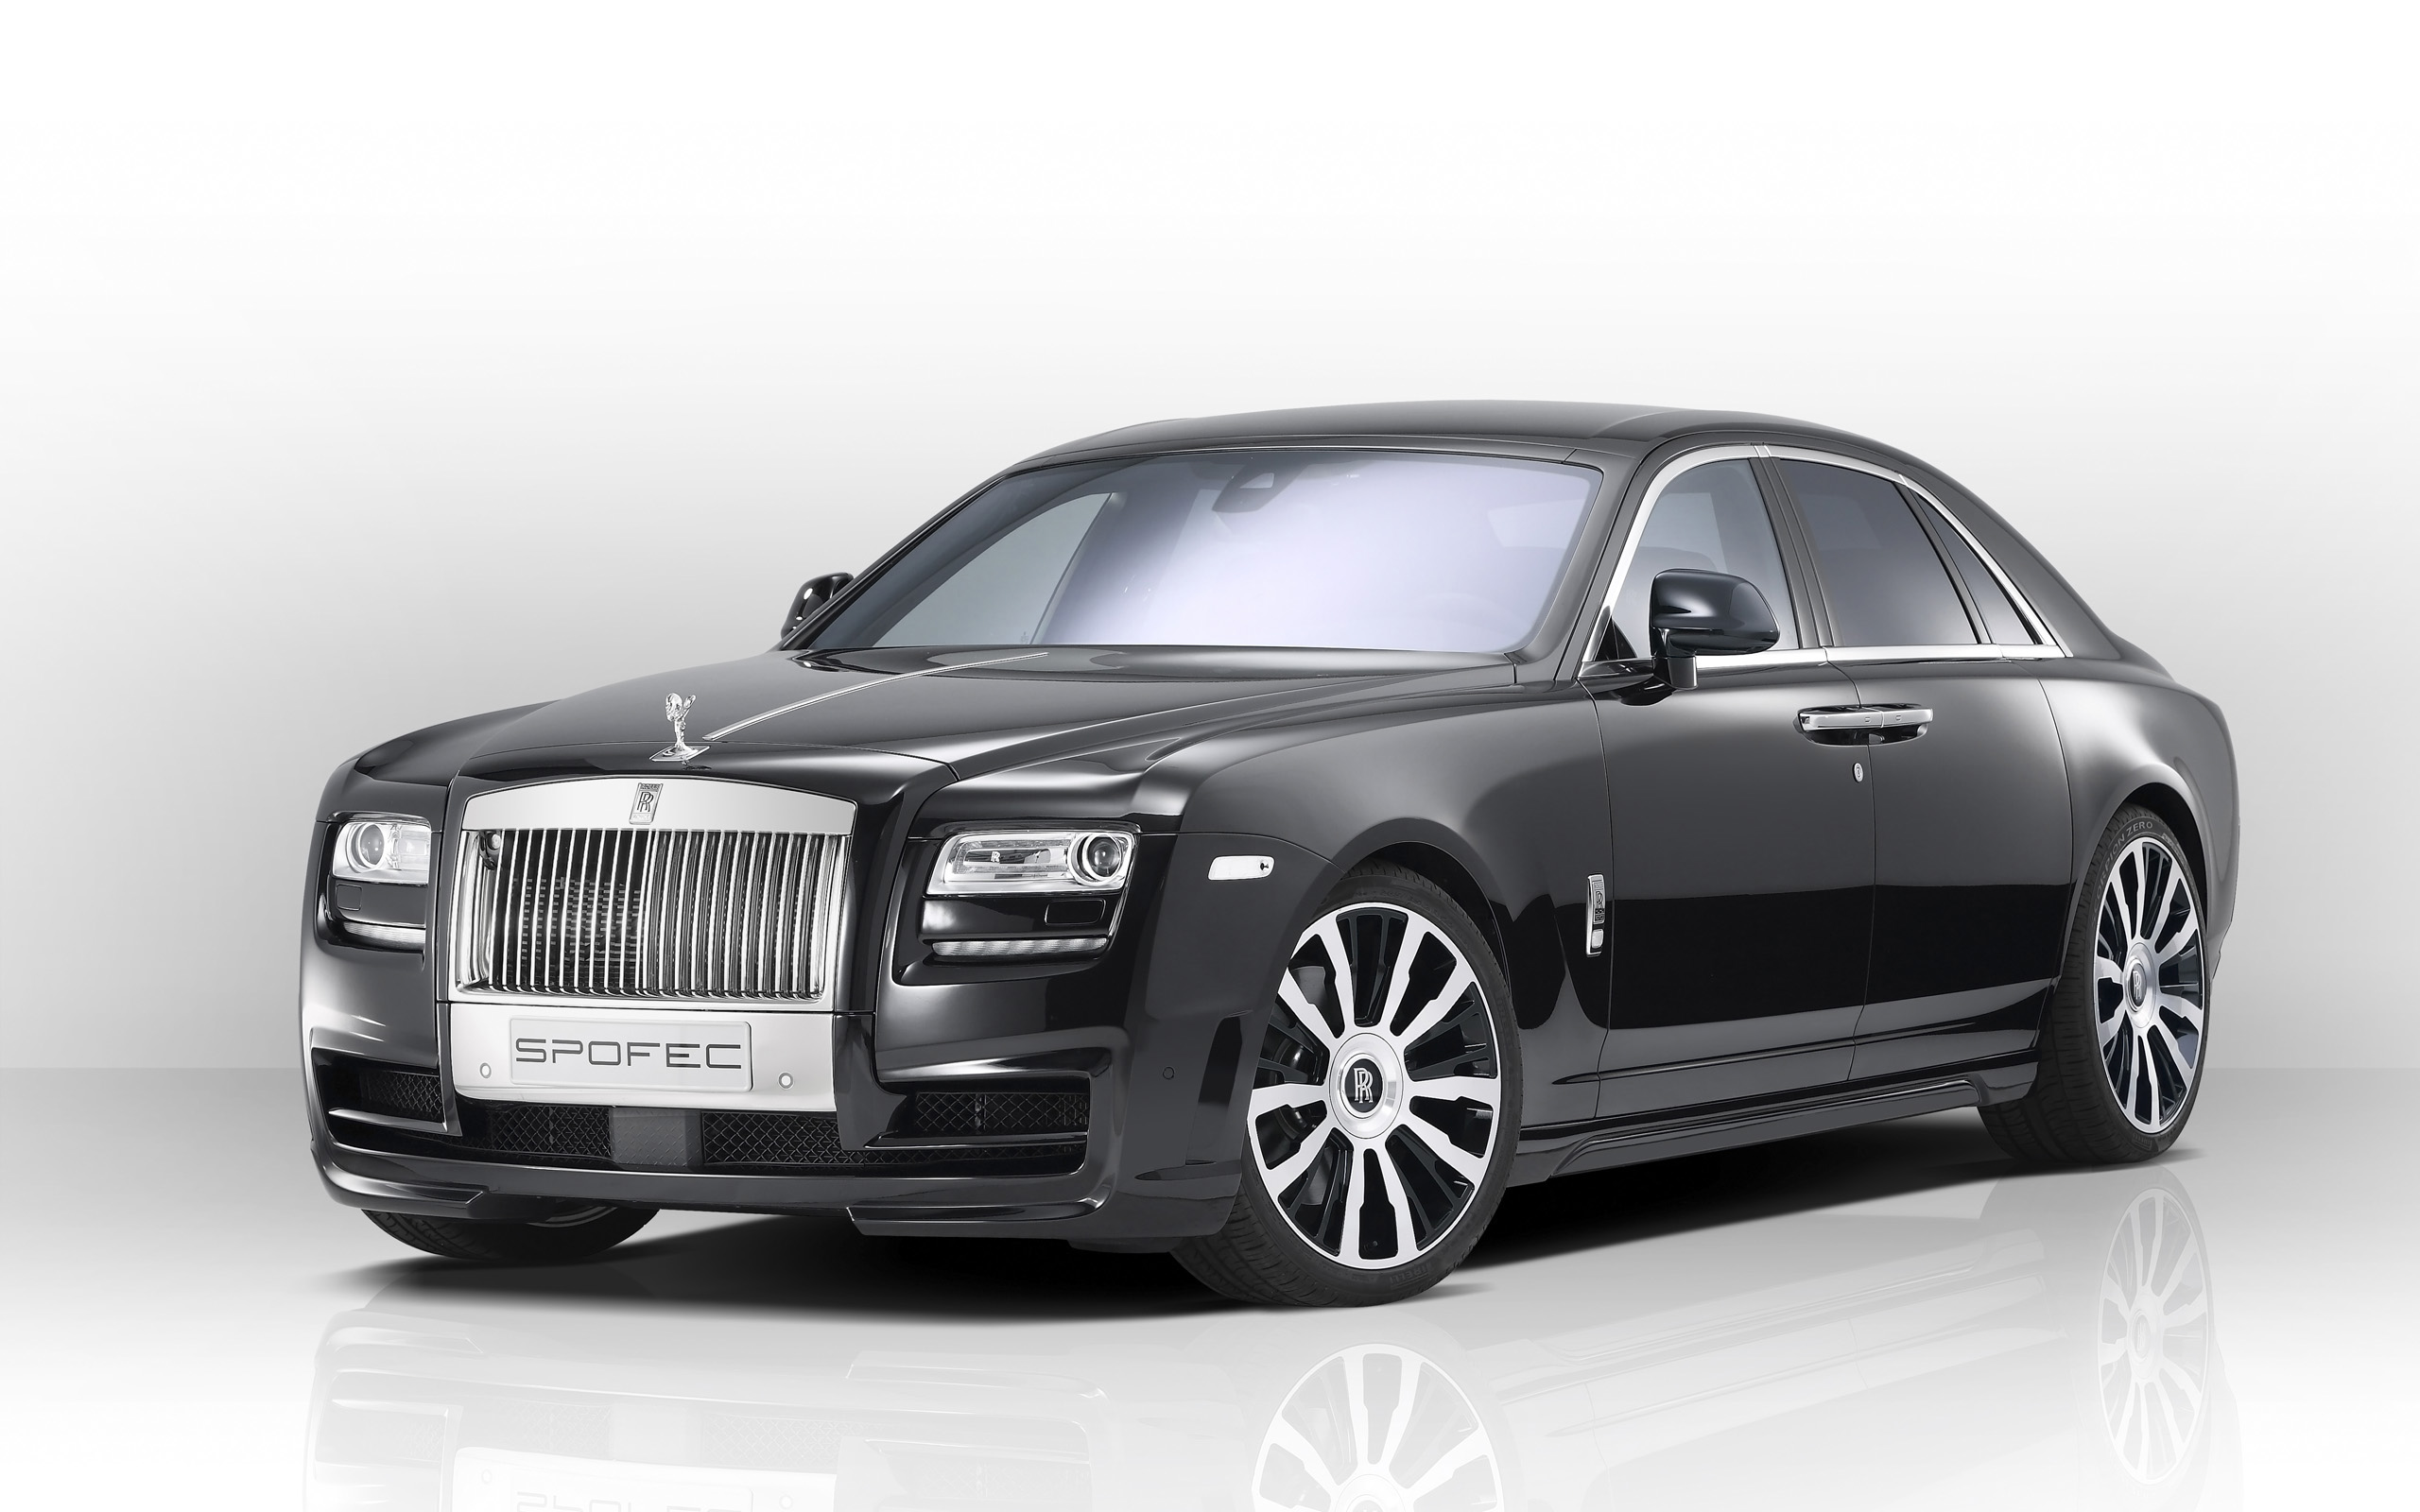 2014 spofec rolls royce ghost wallpaper hd car wallpapers id 4851. Black Bedroom Furniture Sets. Home Design Ideas